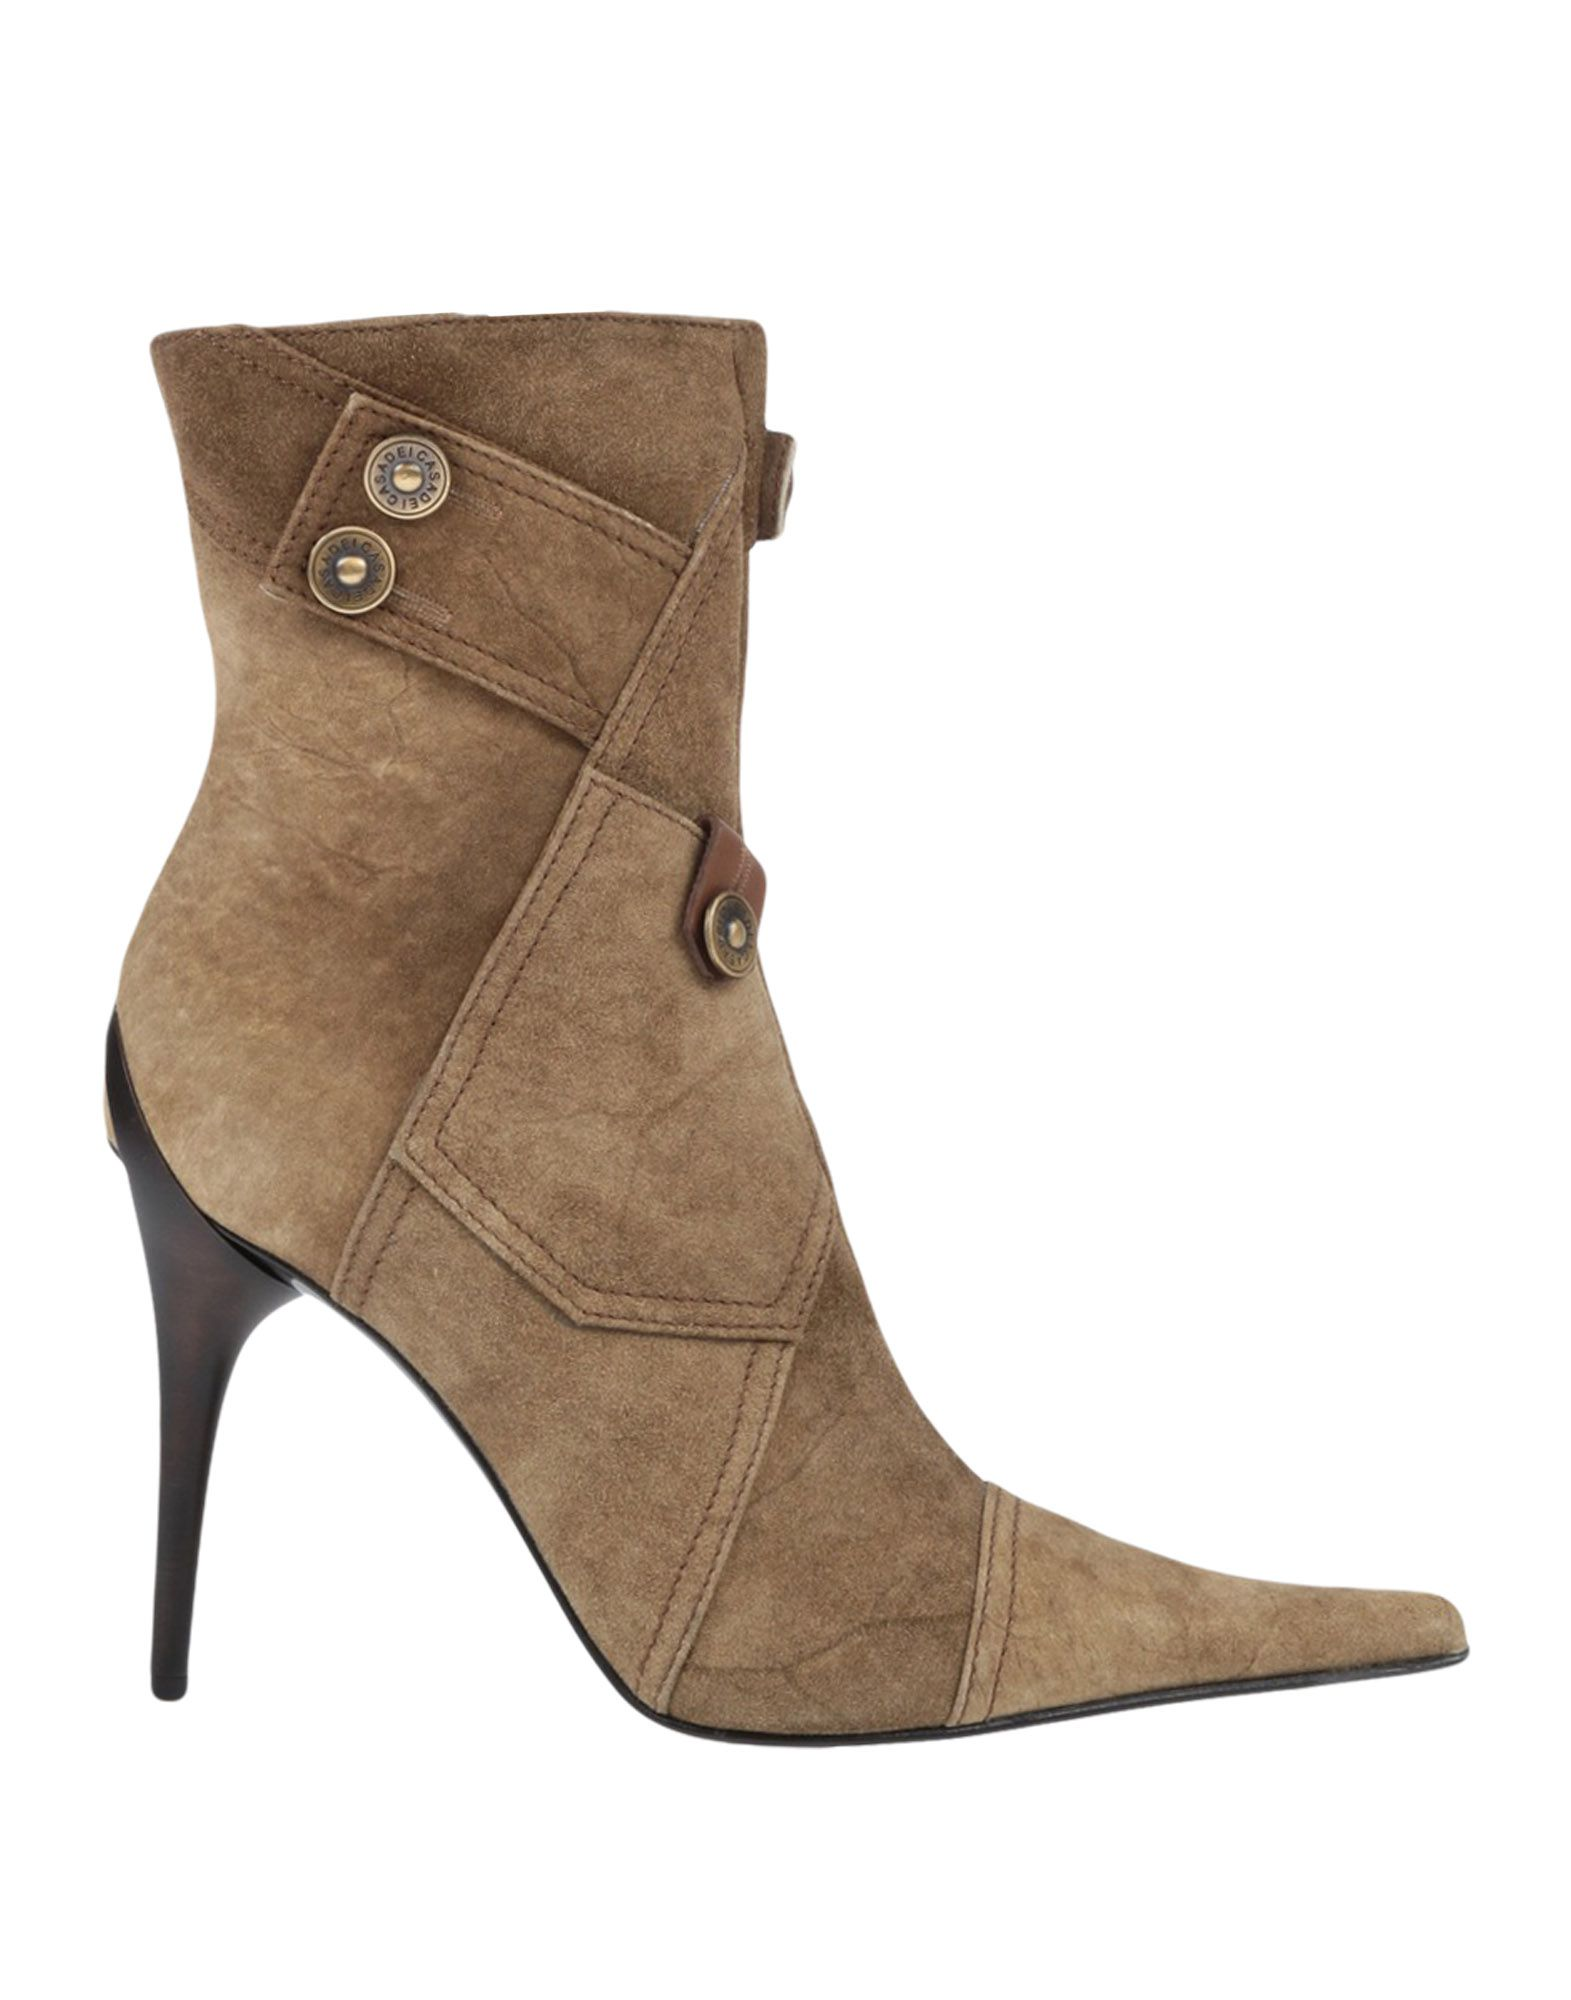 Casadei Ankle Boot - Women Casadei Ankle Boots online on 11518779WQ  United Kingdom - 11518779WQ on 6a1803